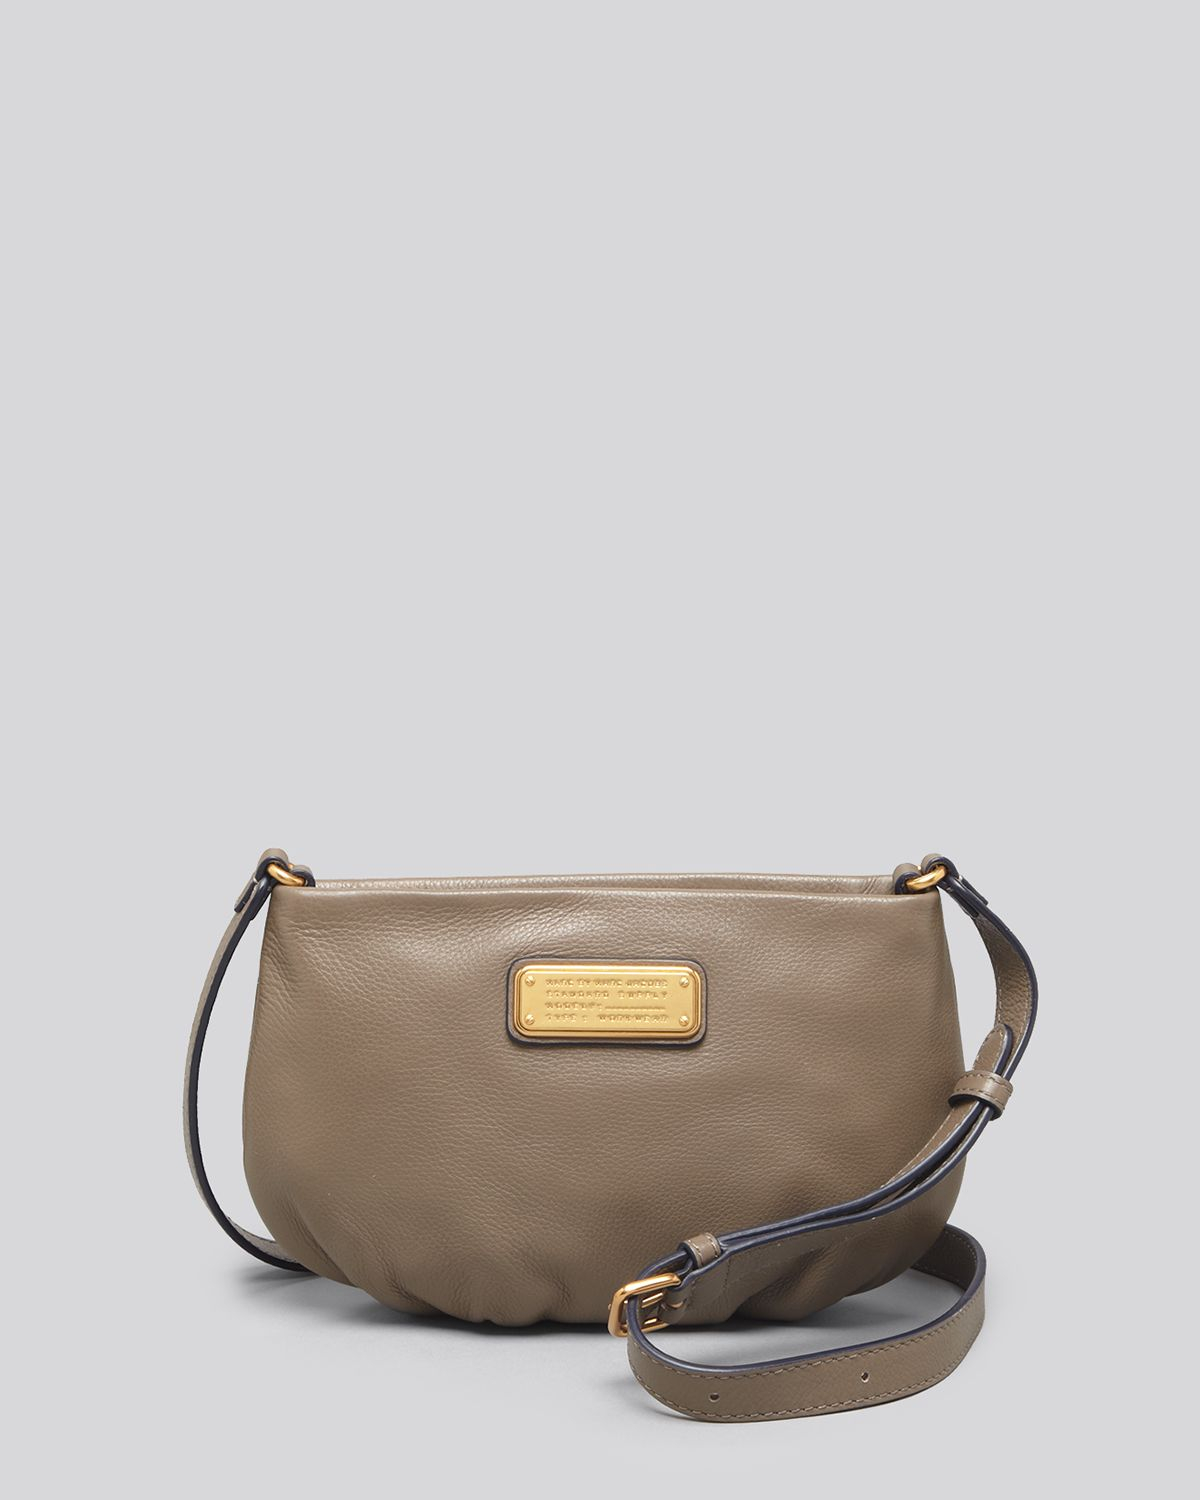 Lyst - Marc By Marc Jacobs Crossbody - New Q Percy in Brown